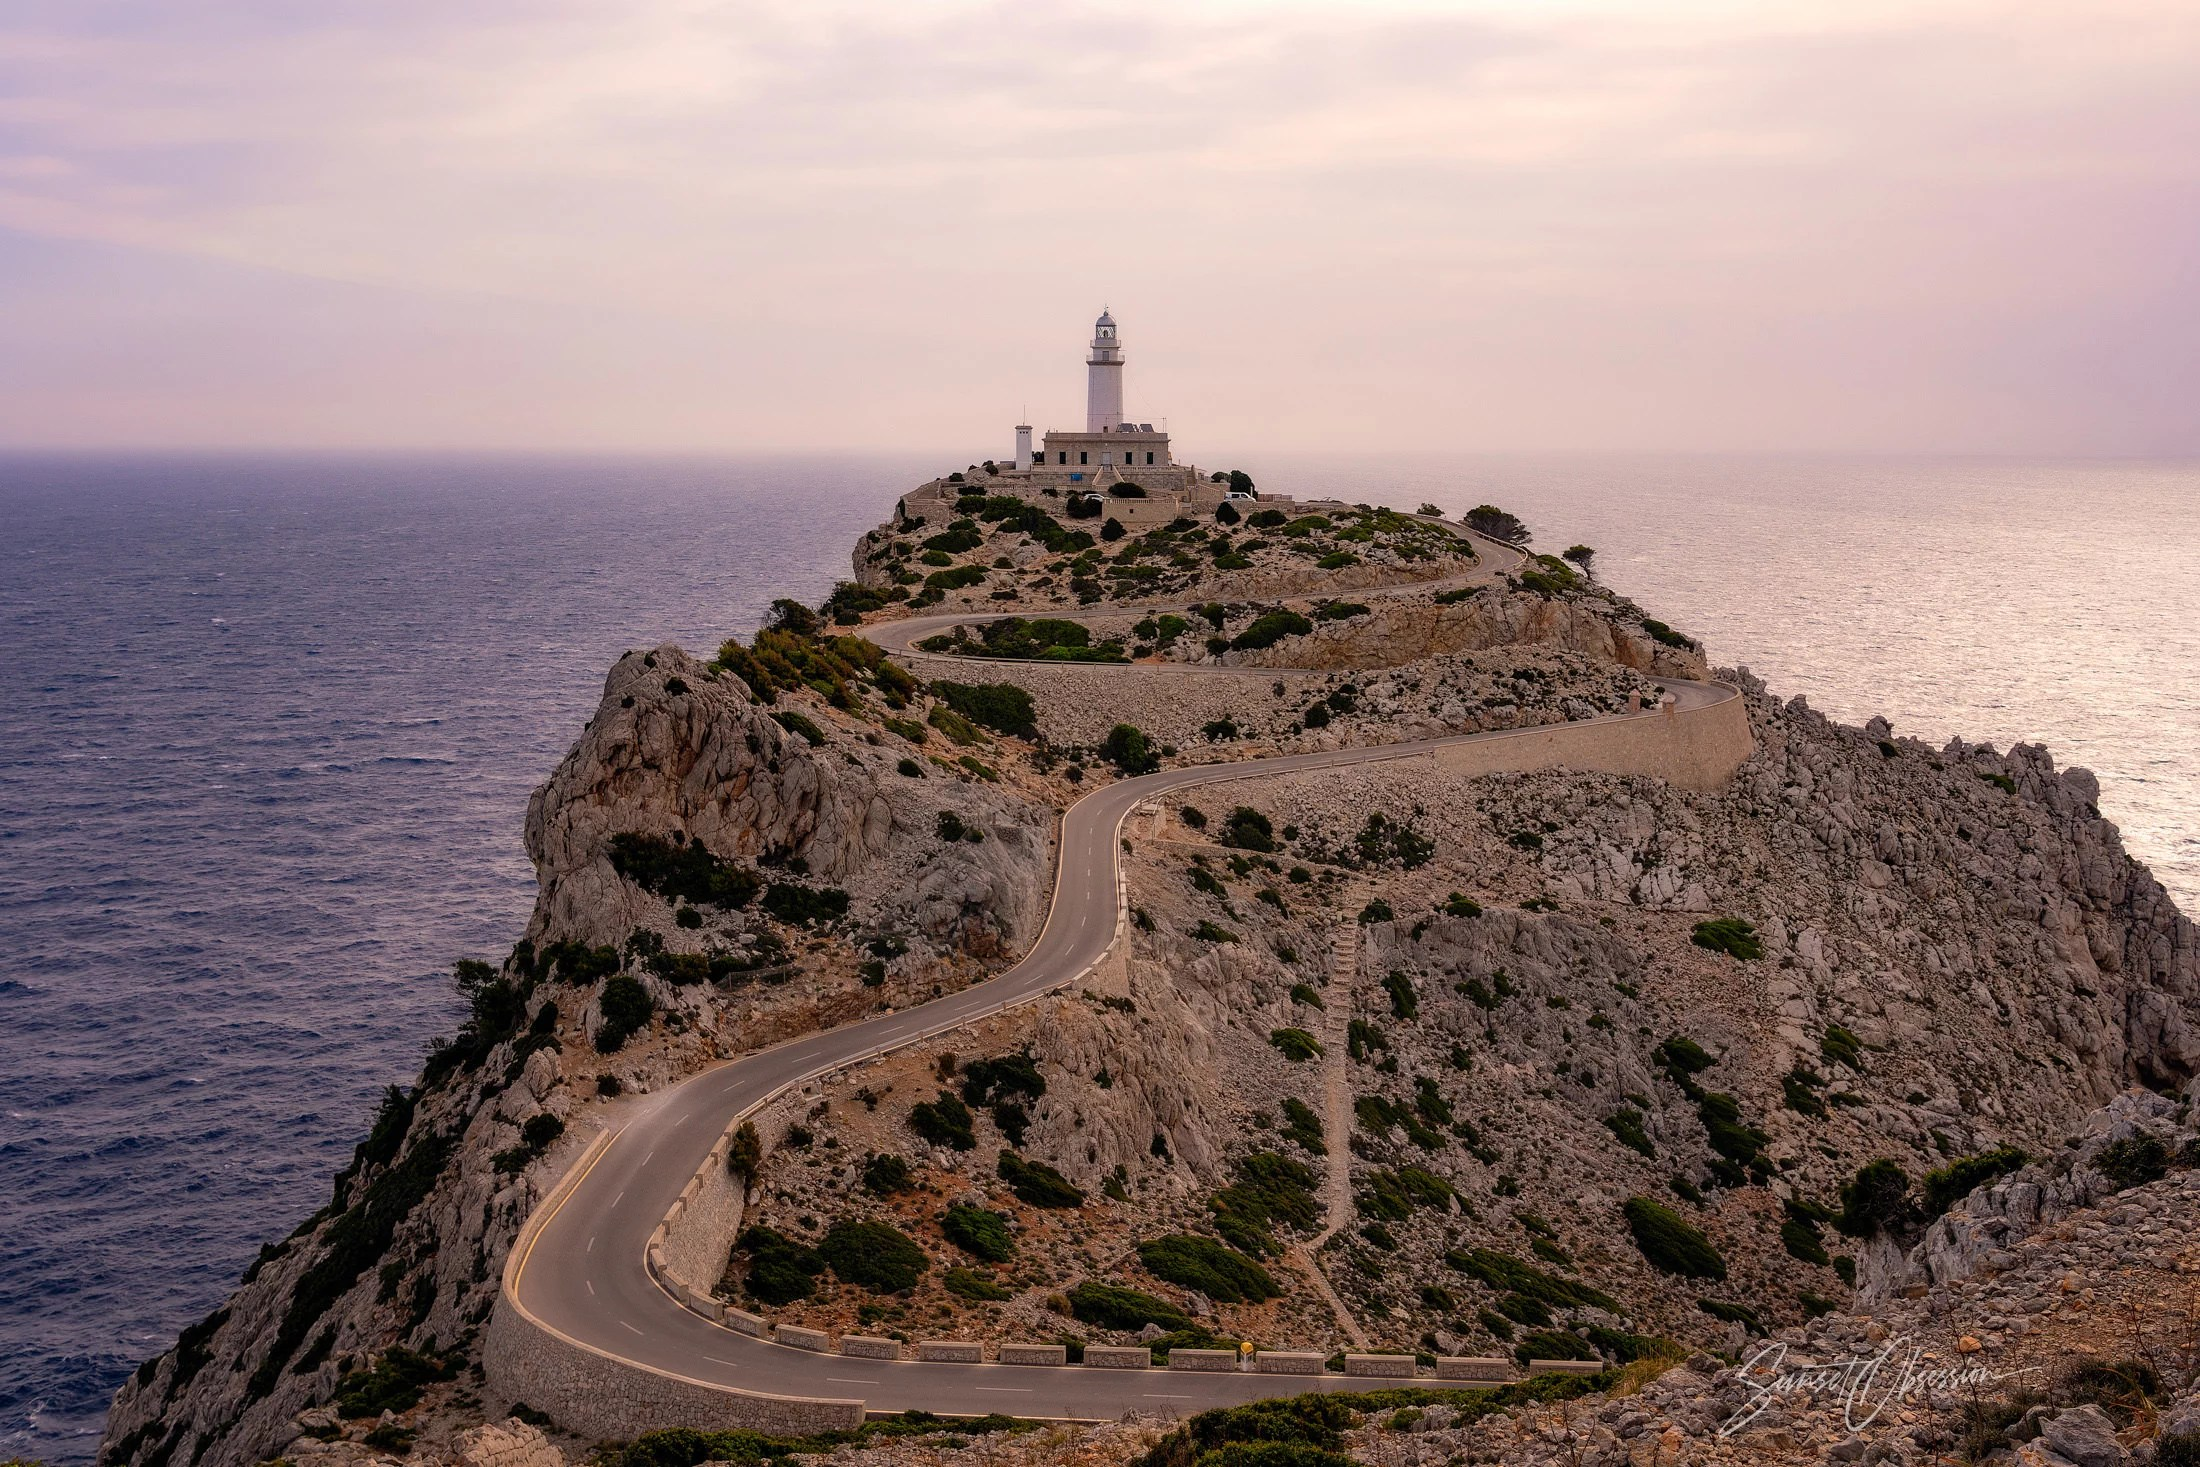 The lighthouse of Cap de Formentor in the early morning light